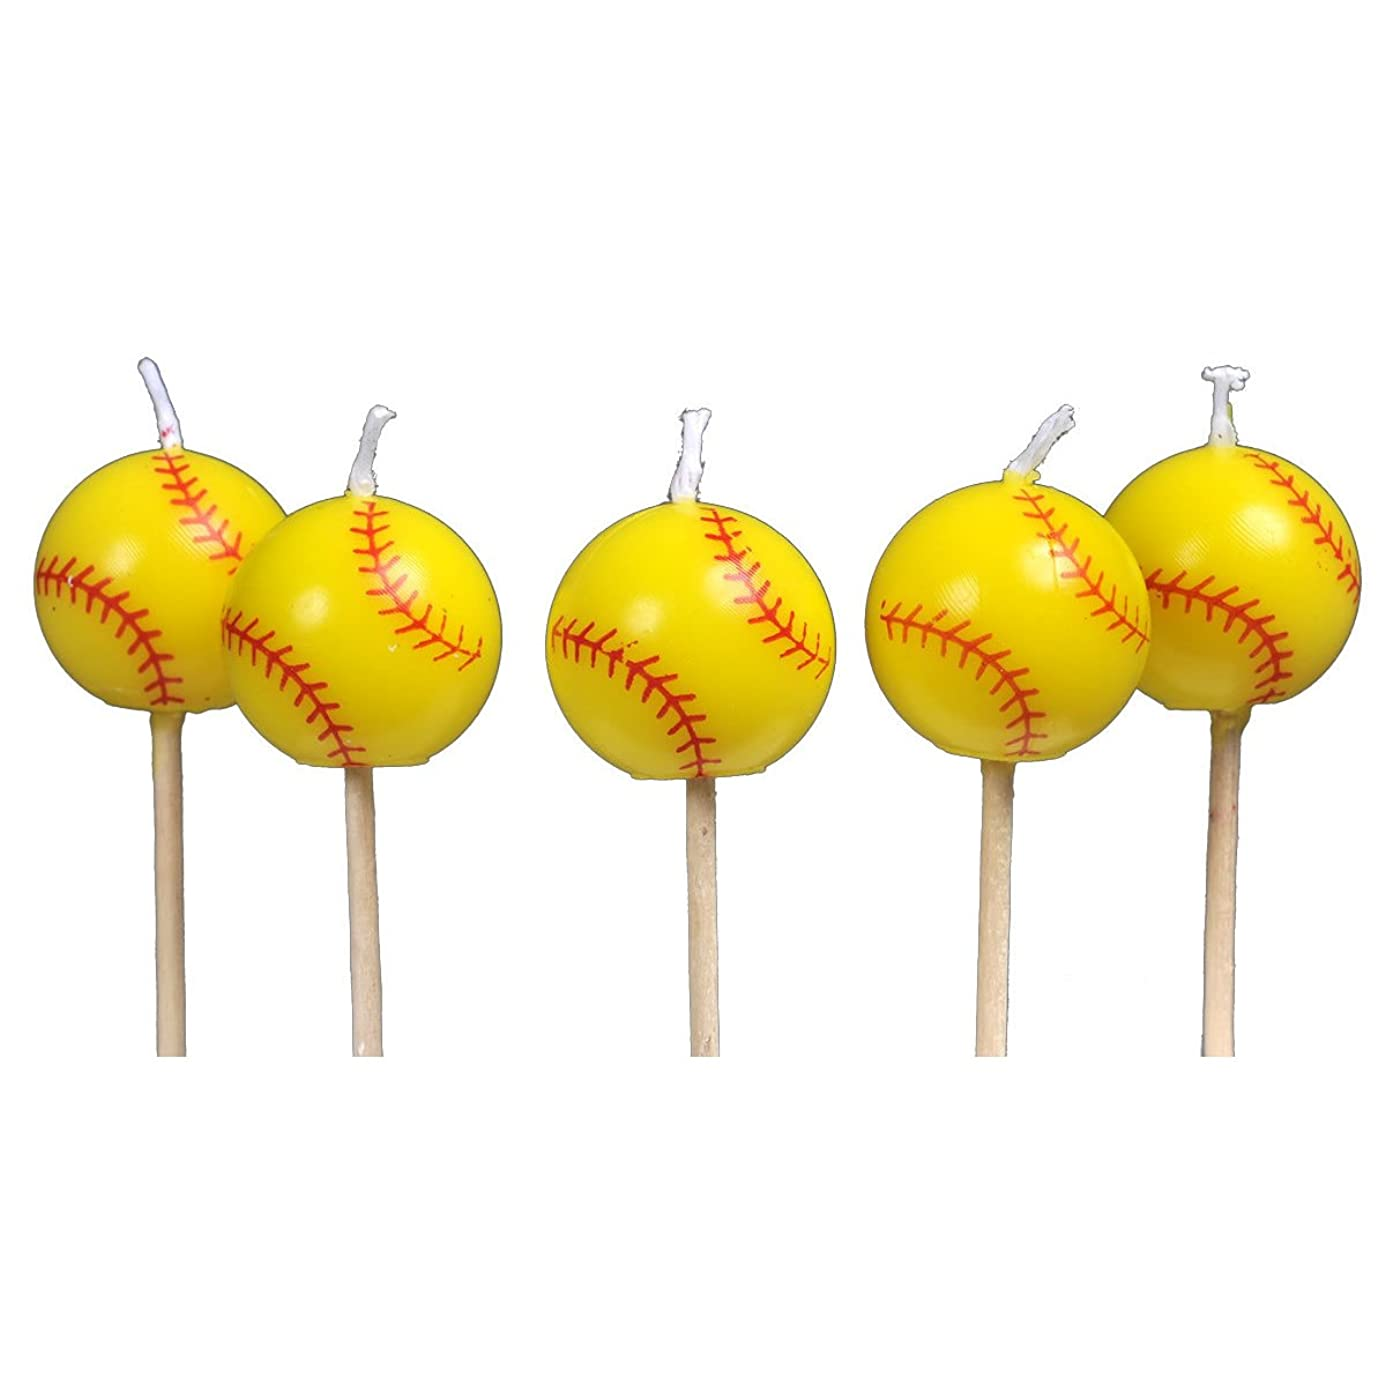 Softball Birthday Candles (5 pack, spherical balls on picks) Girl's Fastpitch Softball - Extra Innings Collection by Havercamp